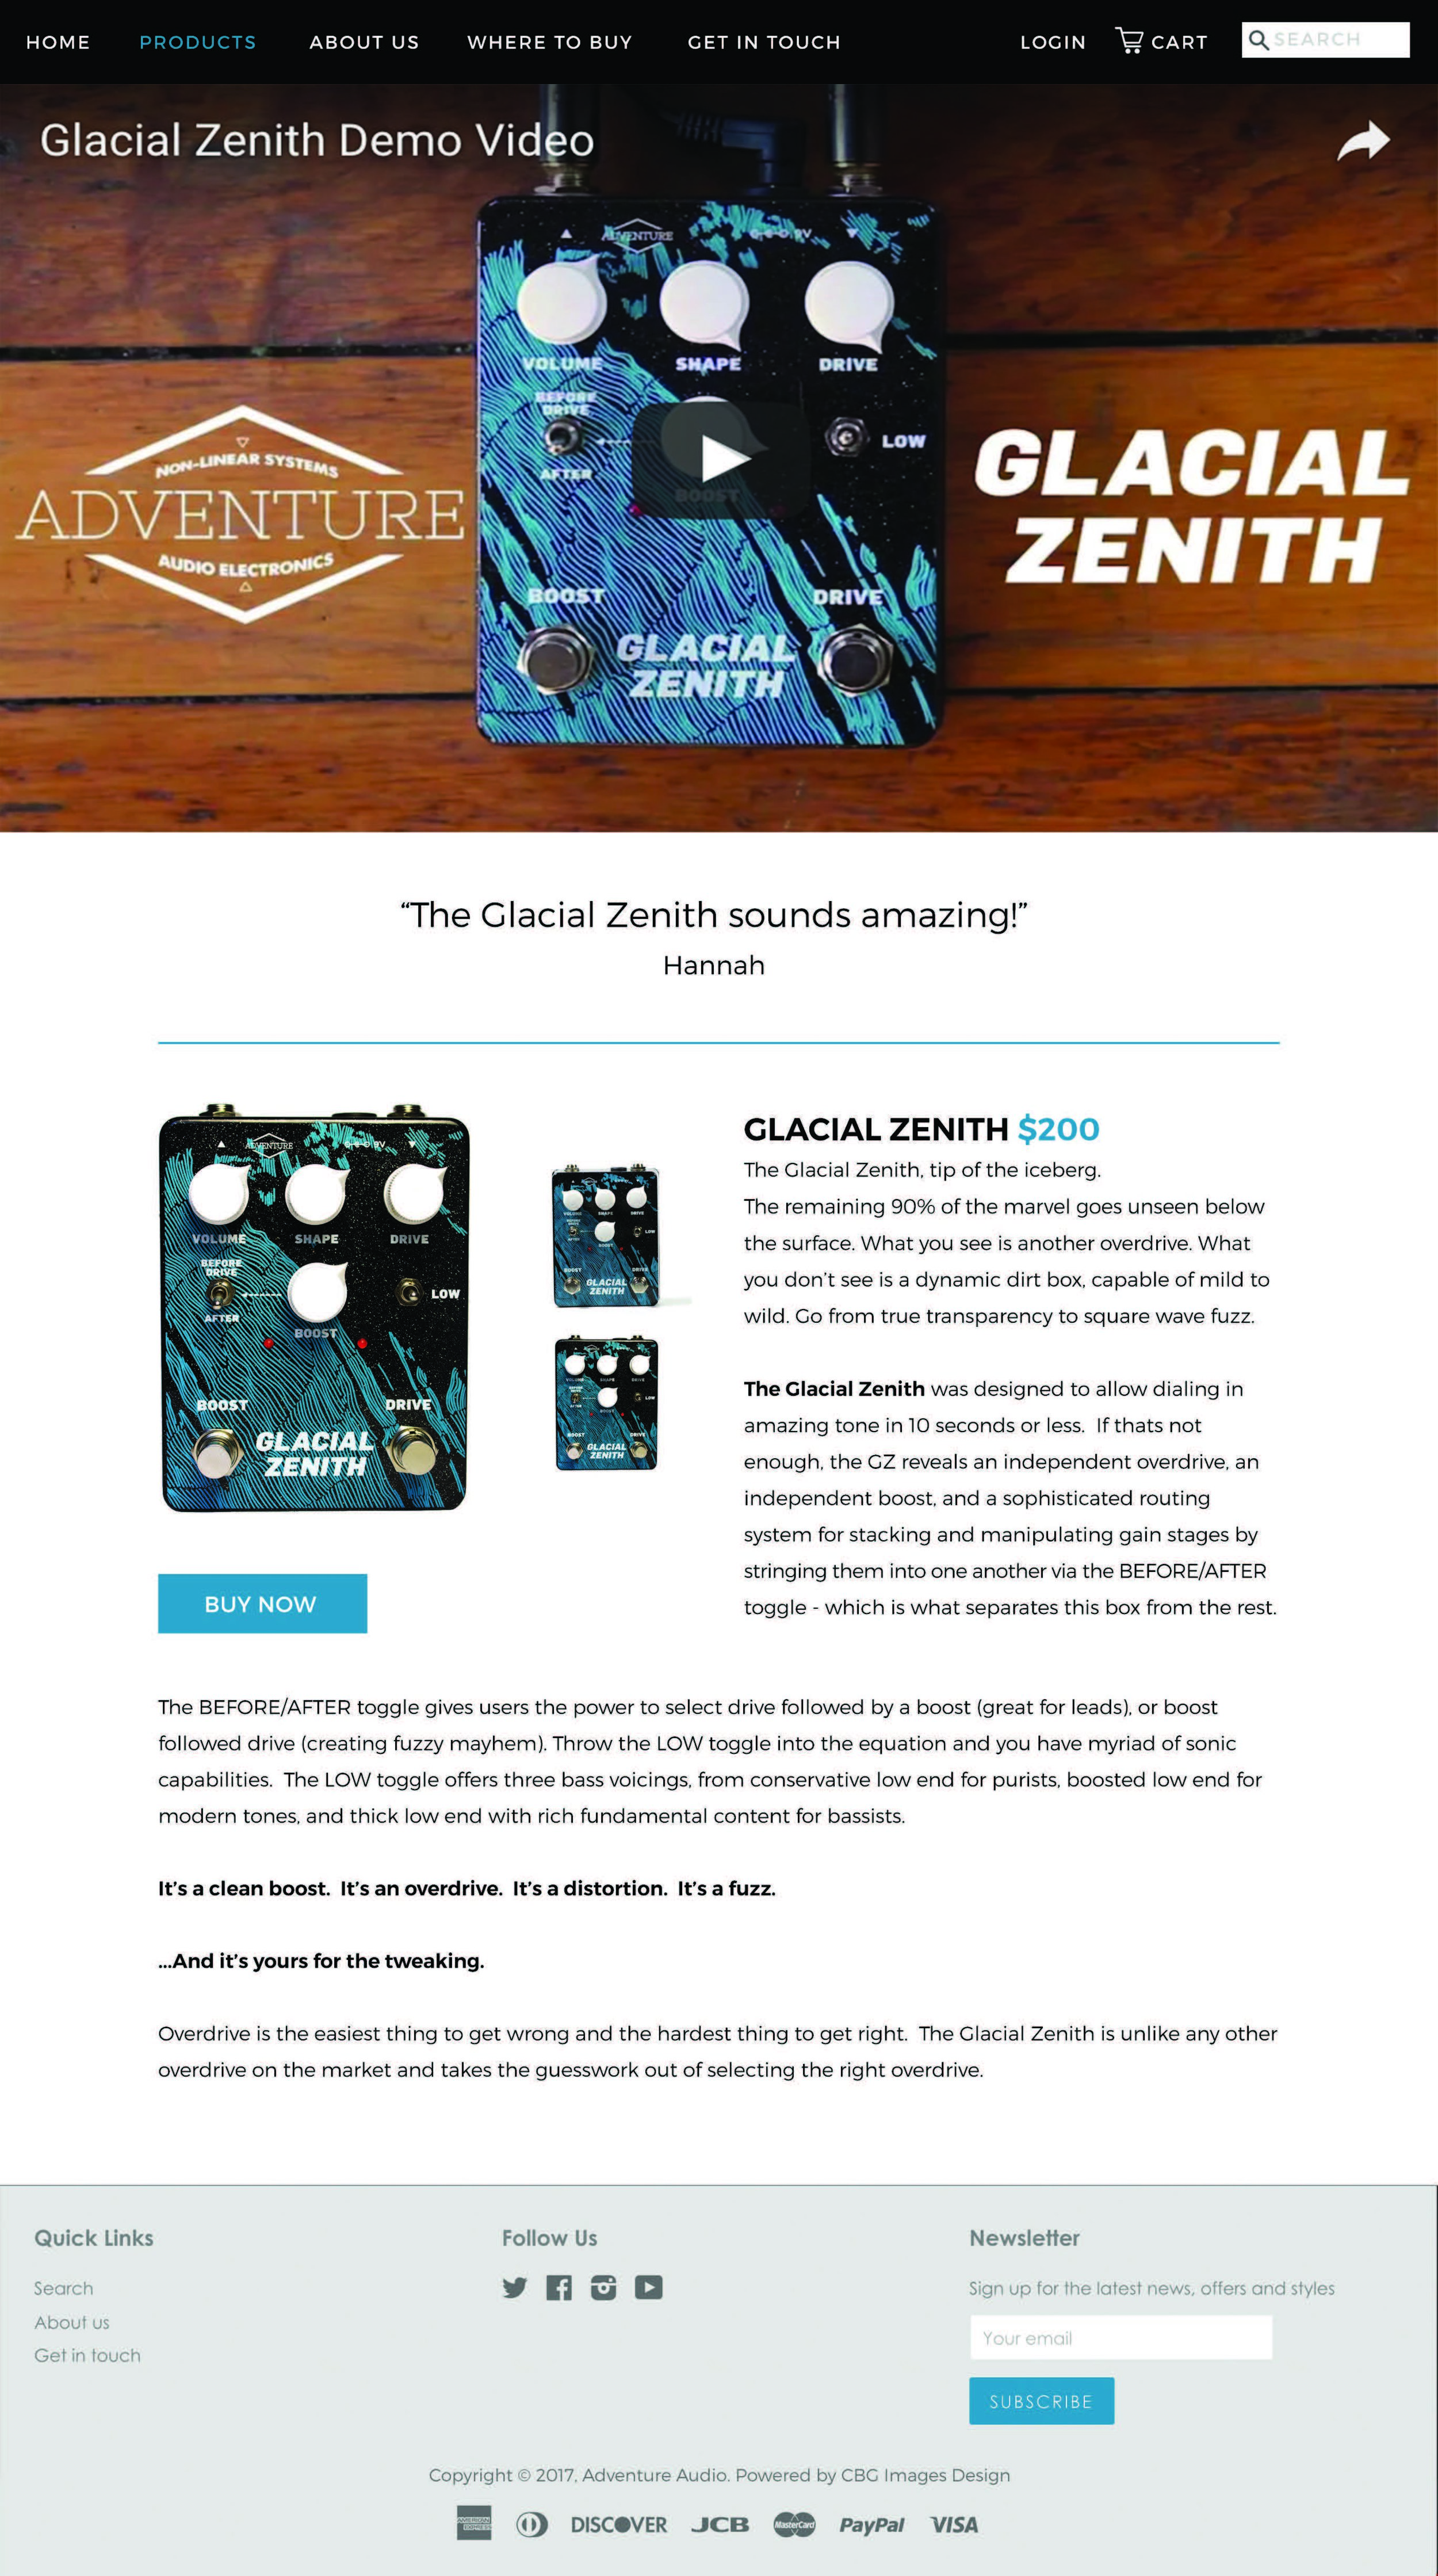 Adventure Audio_UIUX_Product Page_Glacial Zenith.jpg